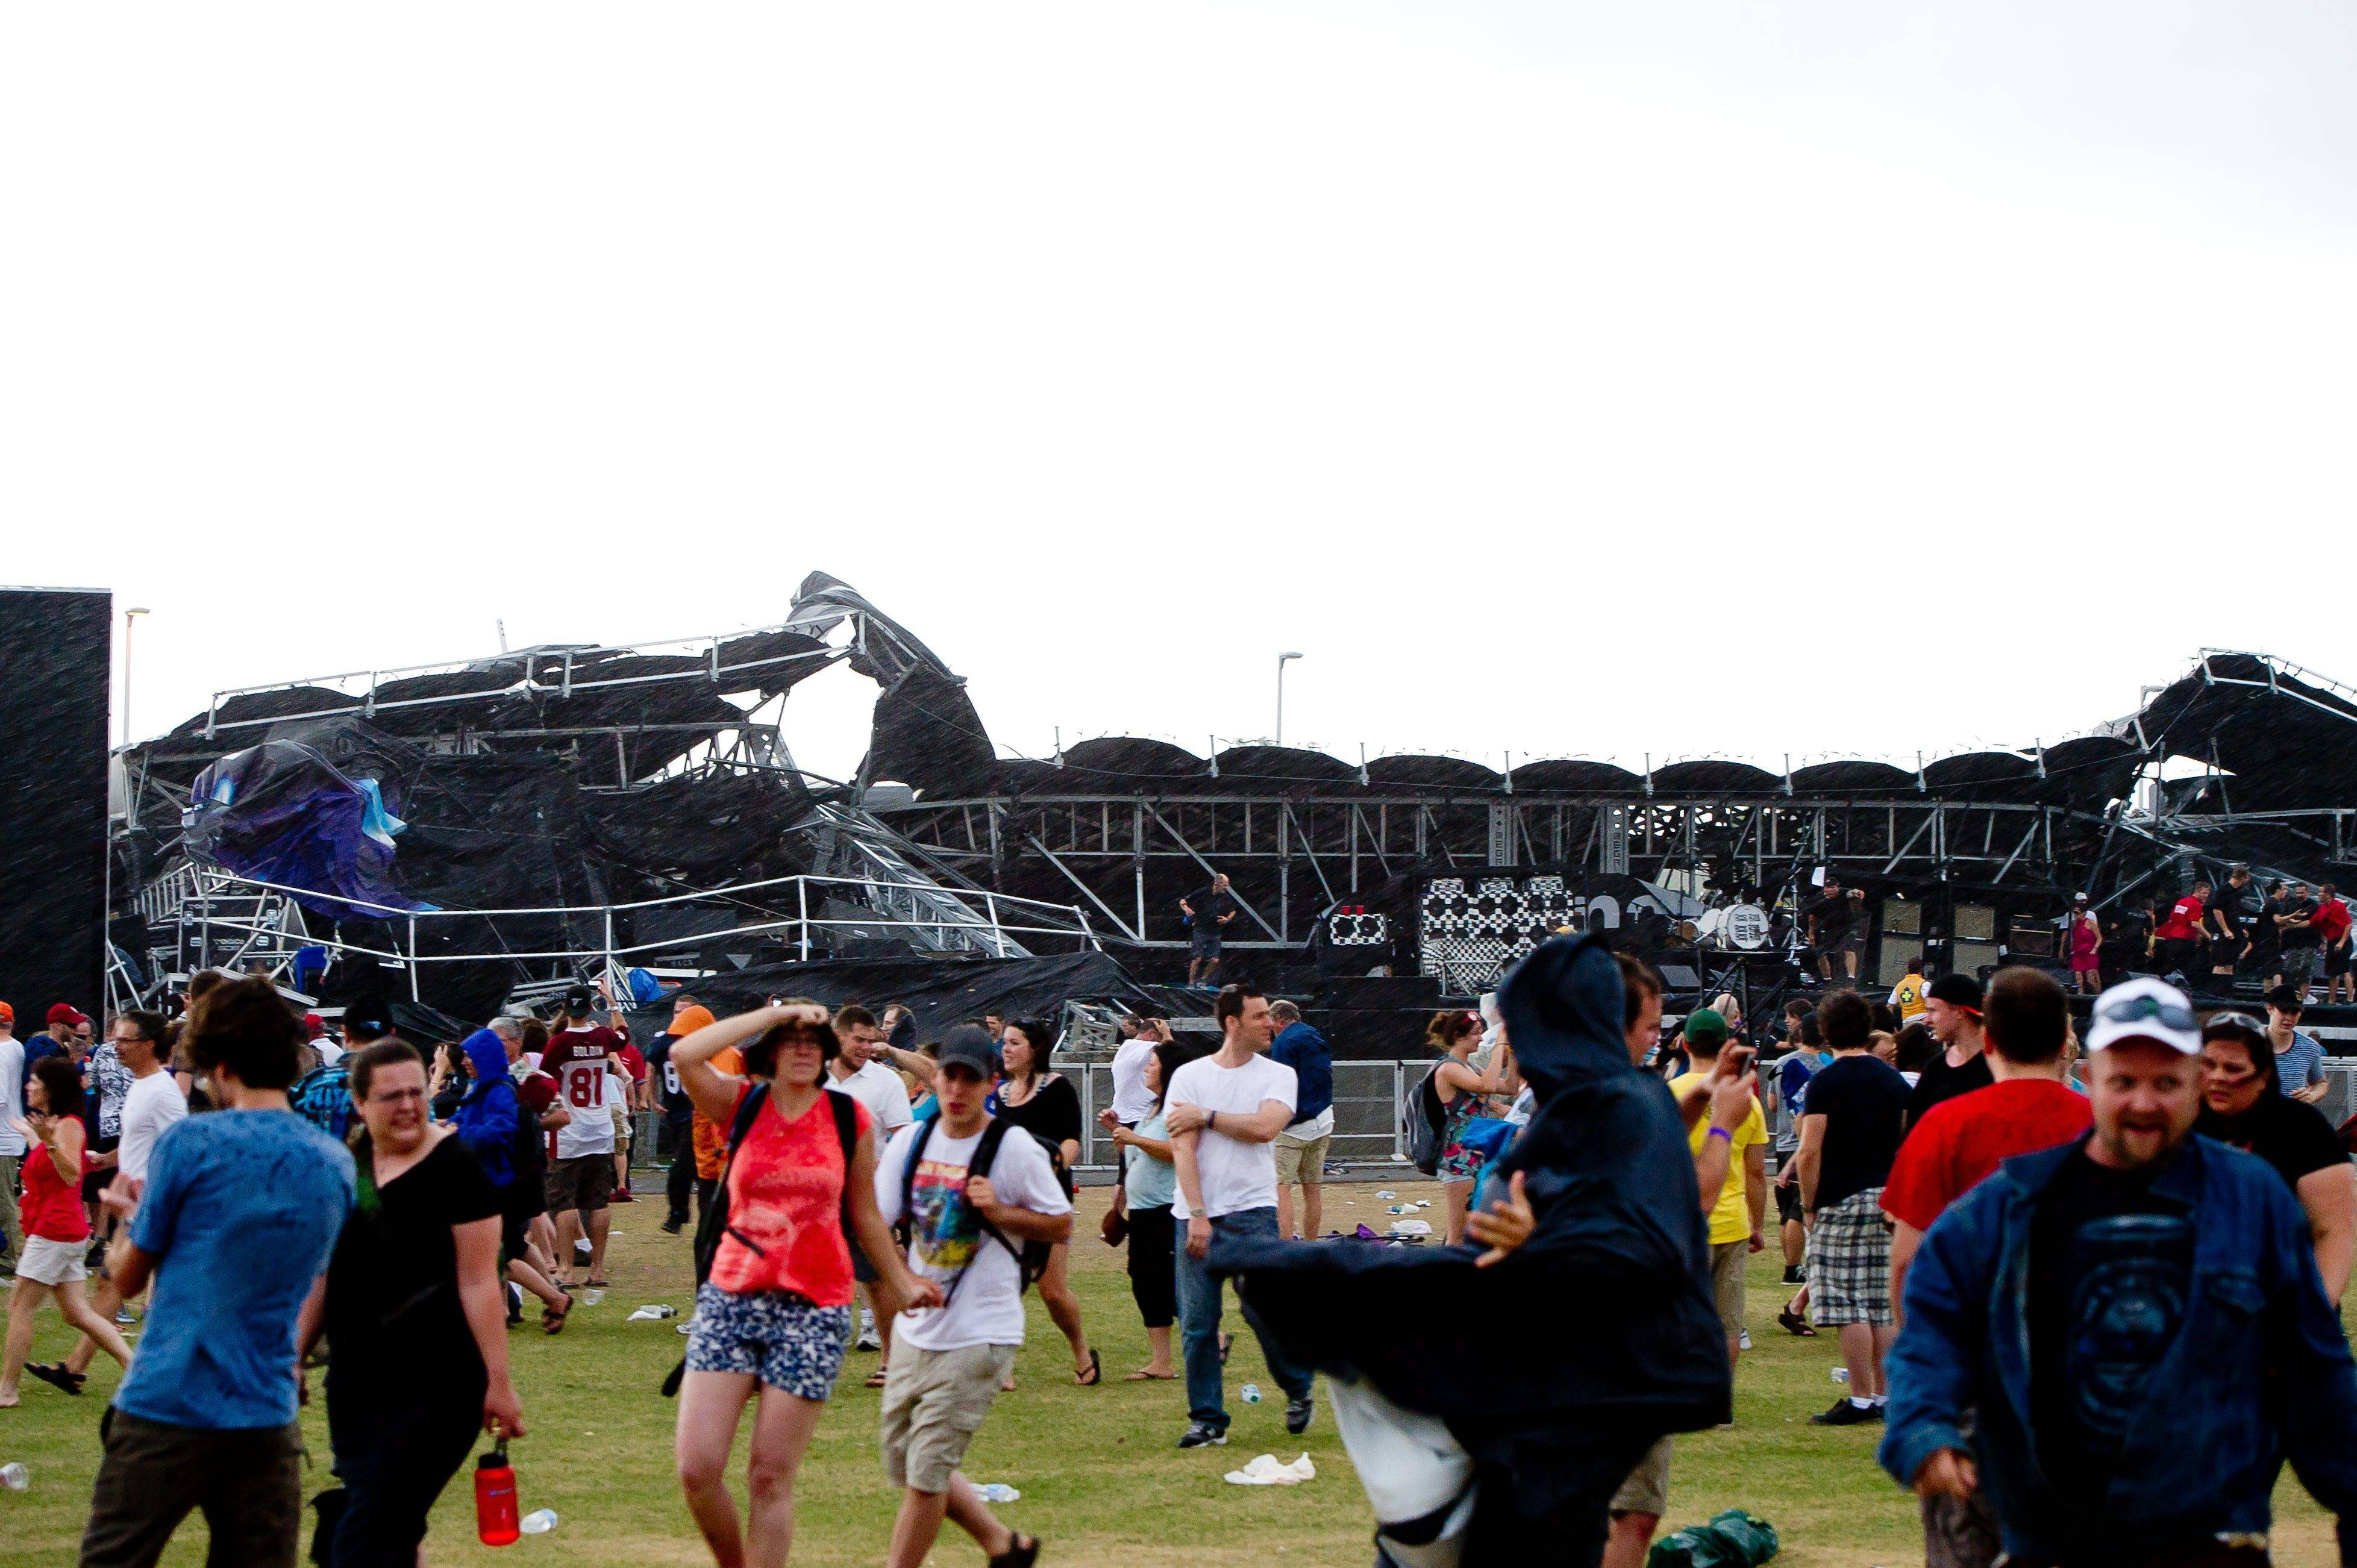 People run for cover after the main stage at the Ottawa Bluesfest collapsed Sunday, July 17, in Ottawa, Ontario, when a severe thunderstorm swept through the area.